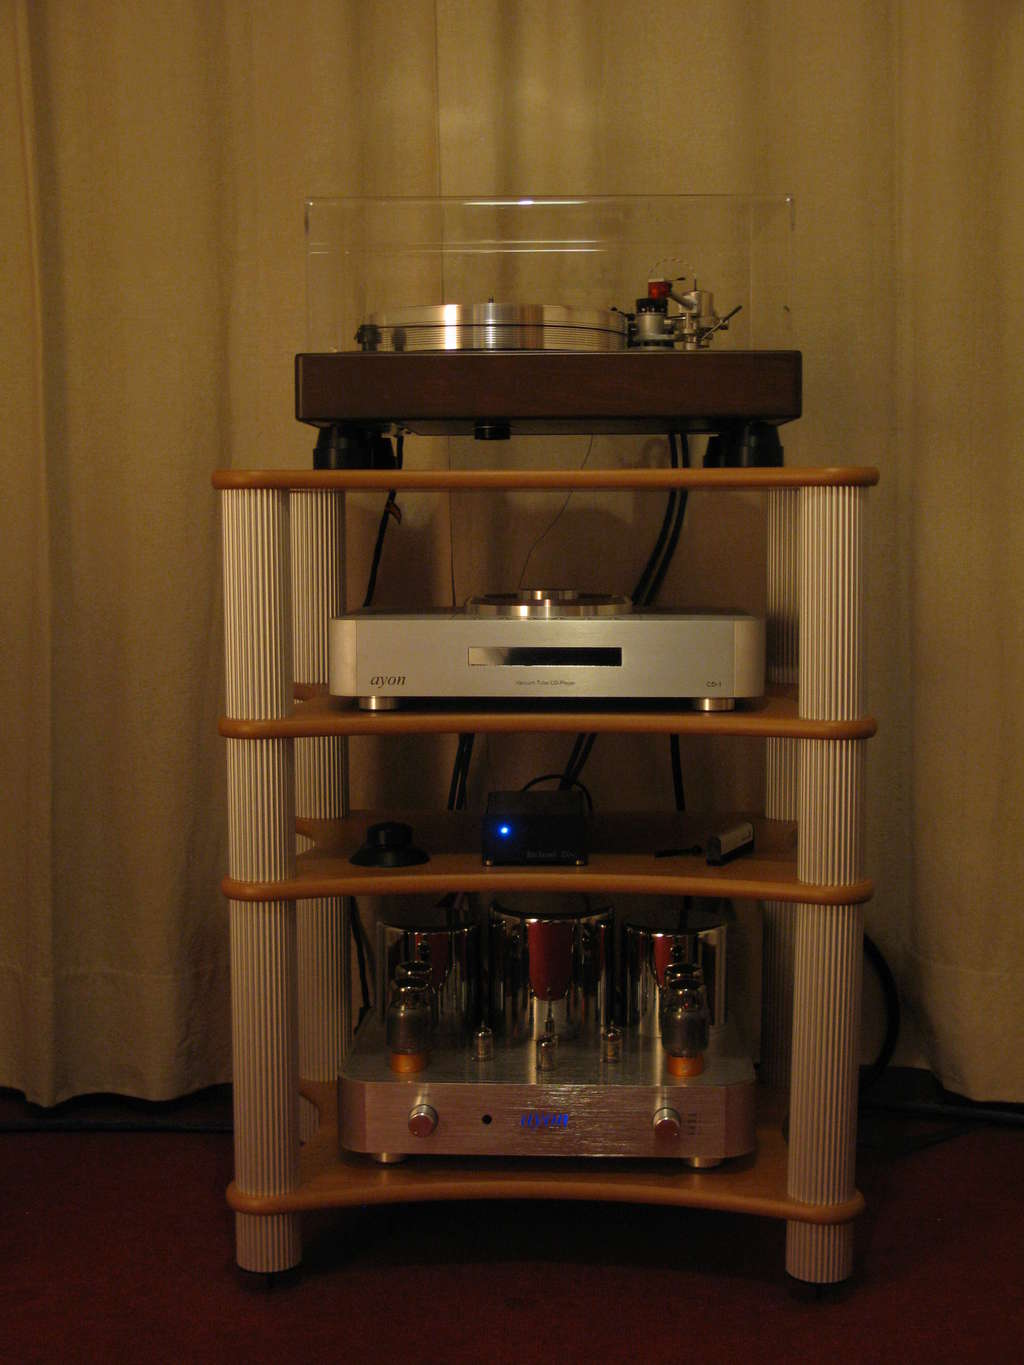 SALAS AUDIO PLANET Equipo12